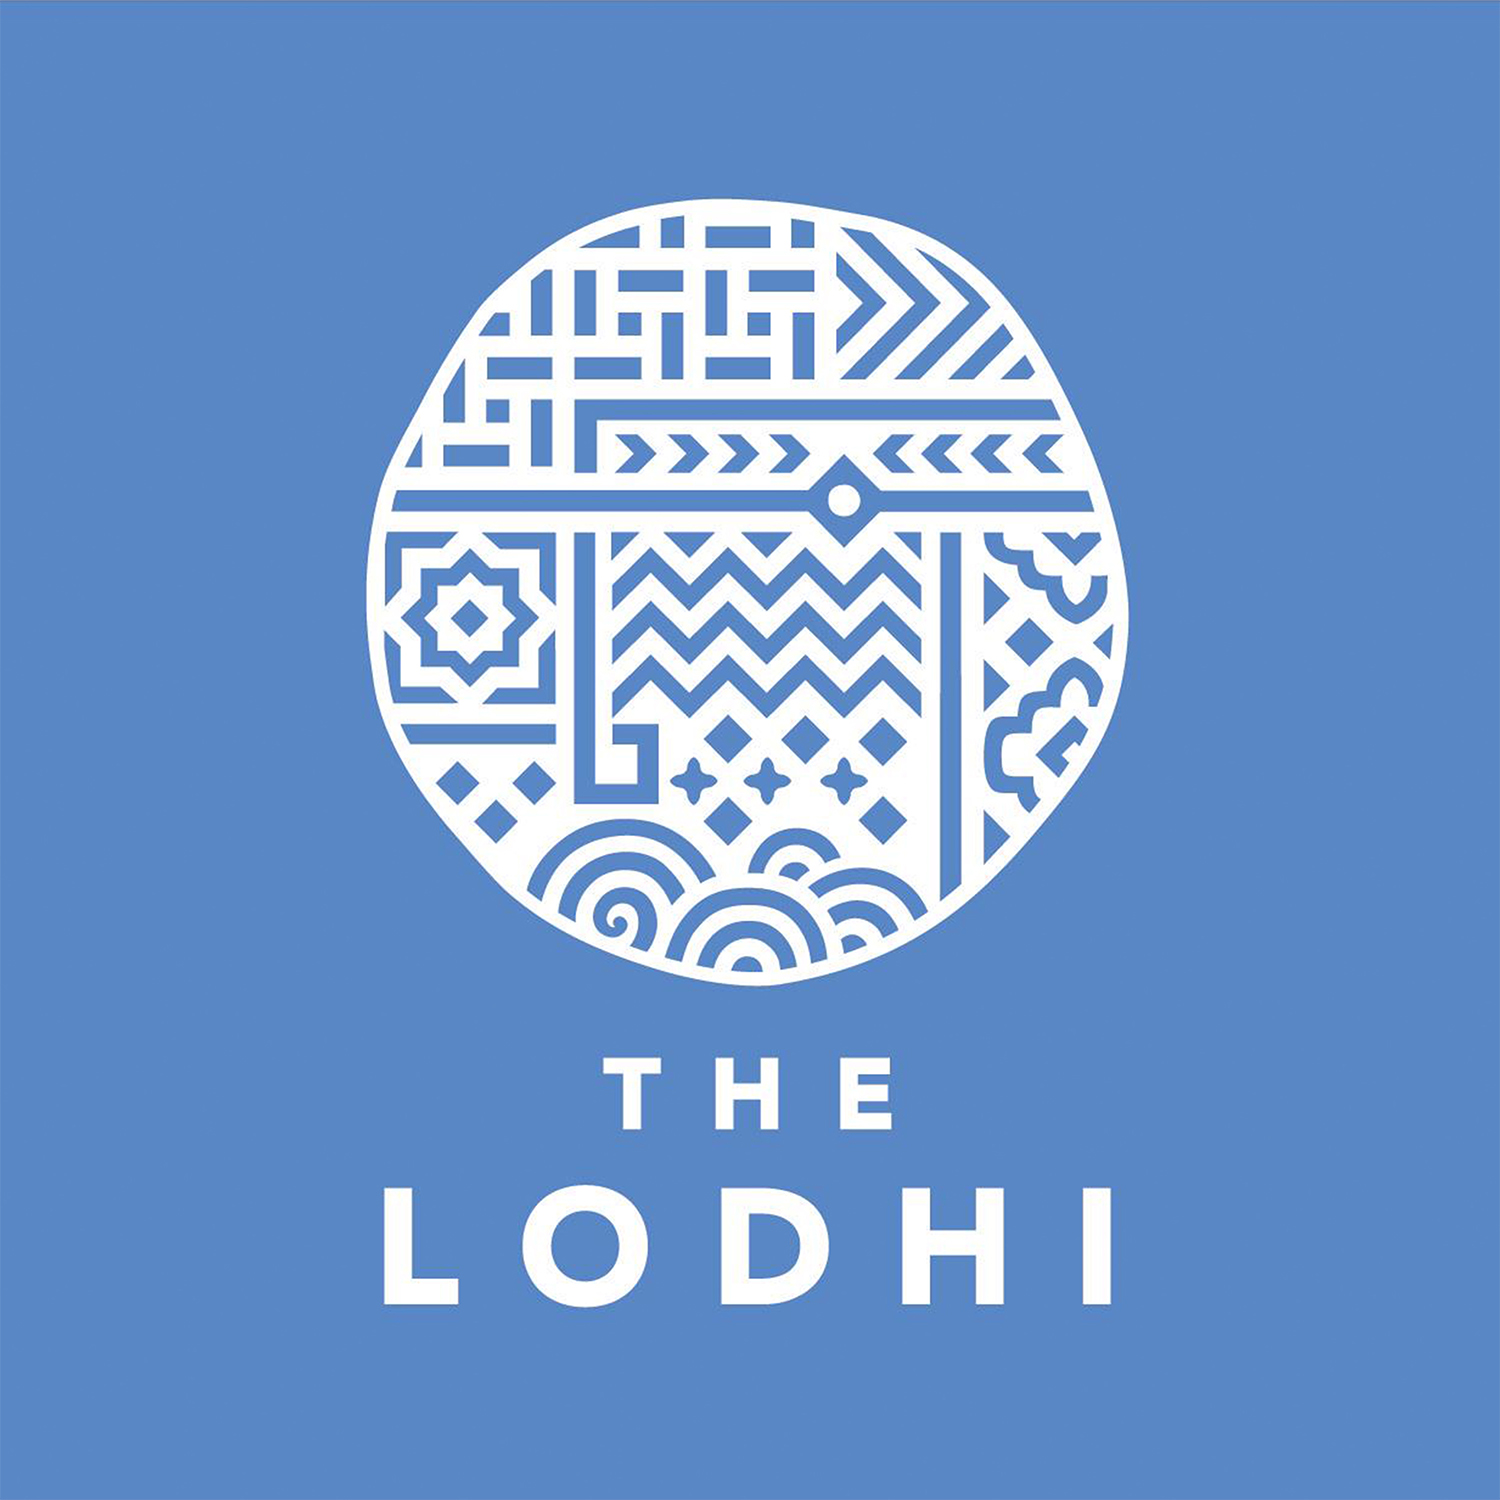 The Lodhi Hotels